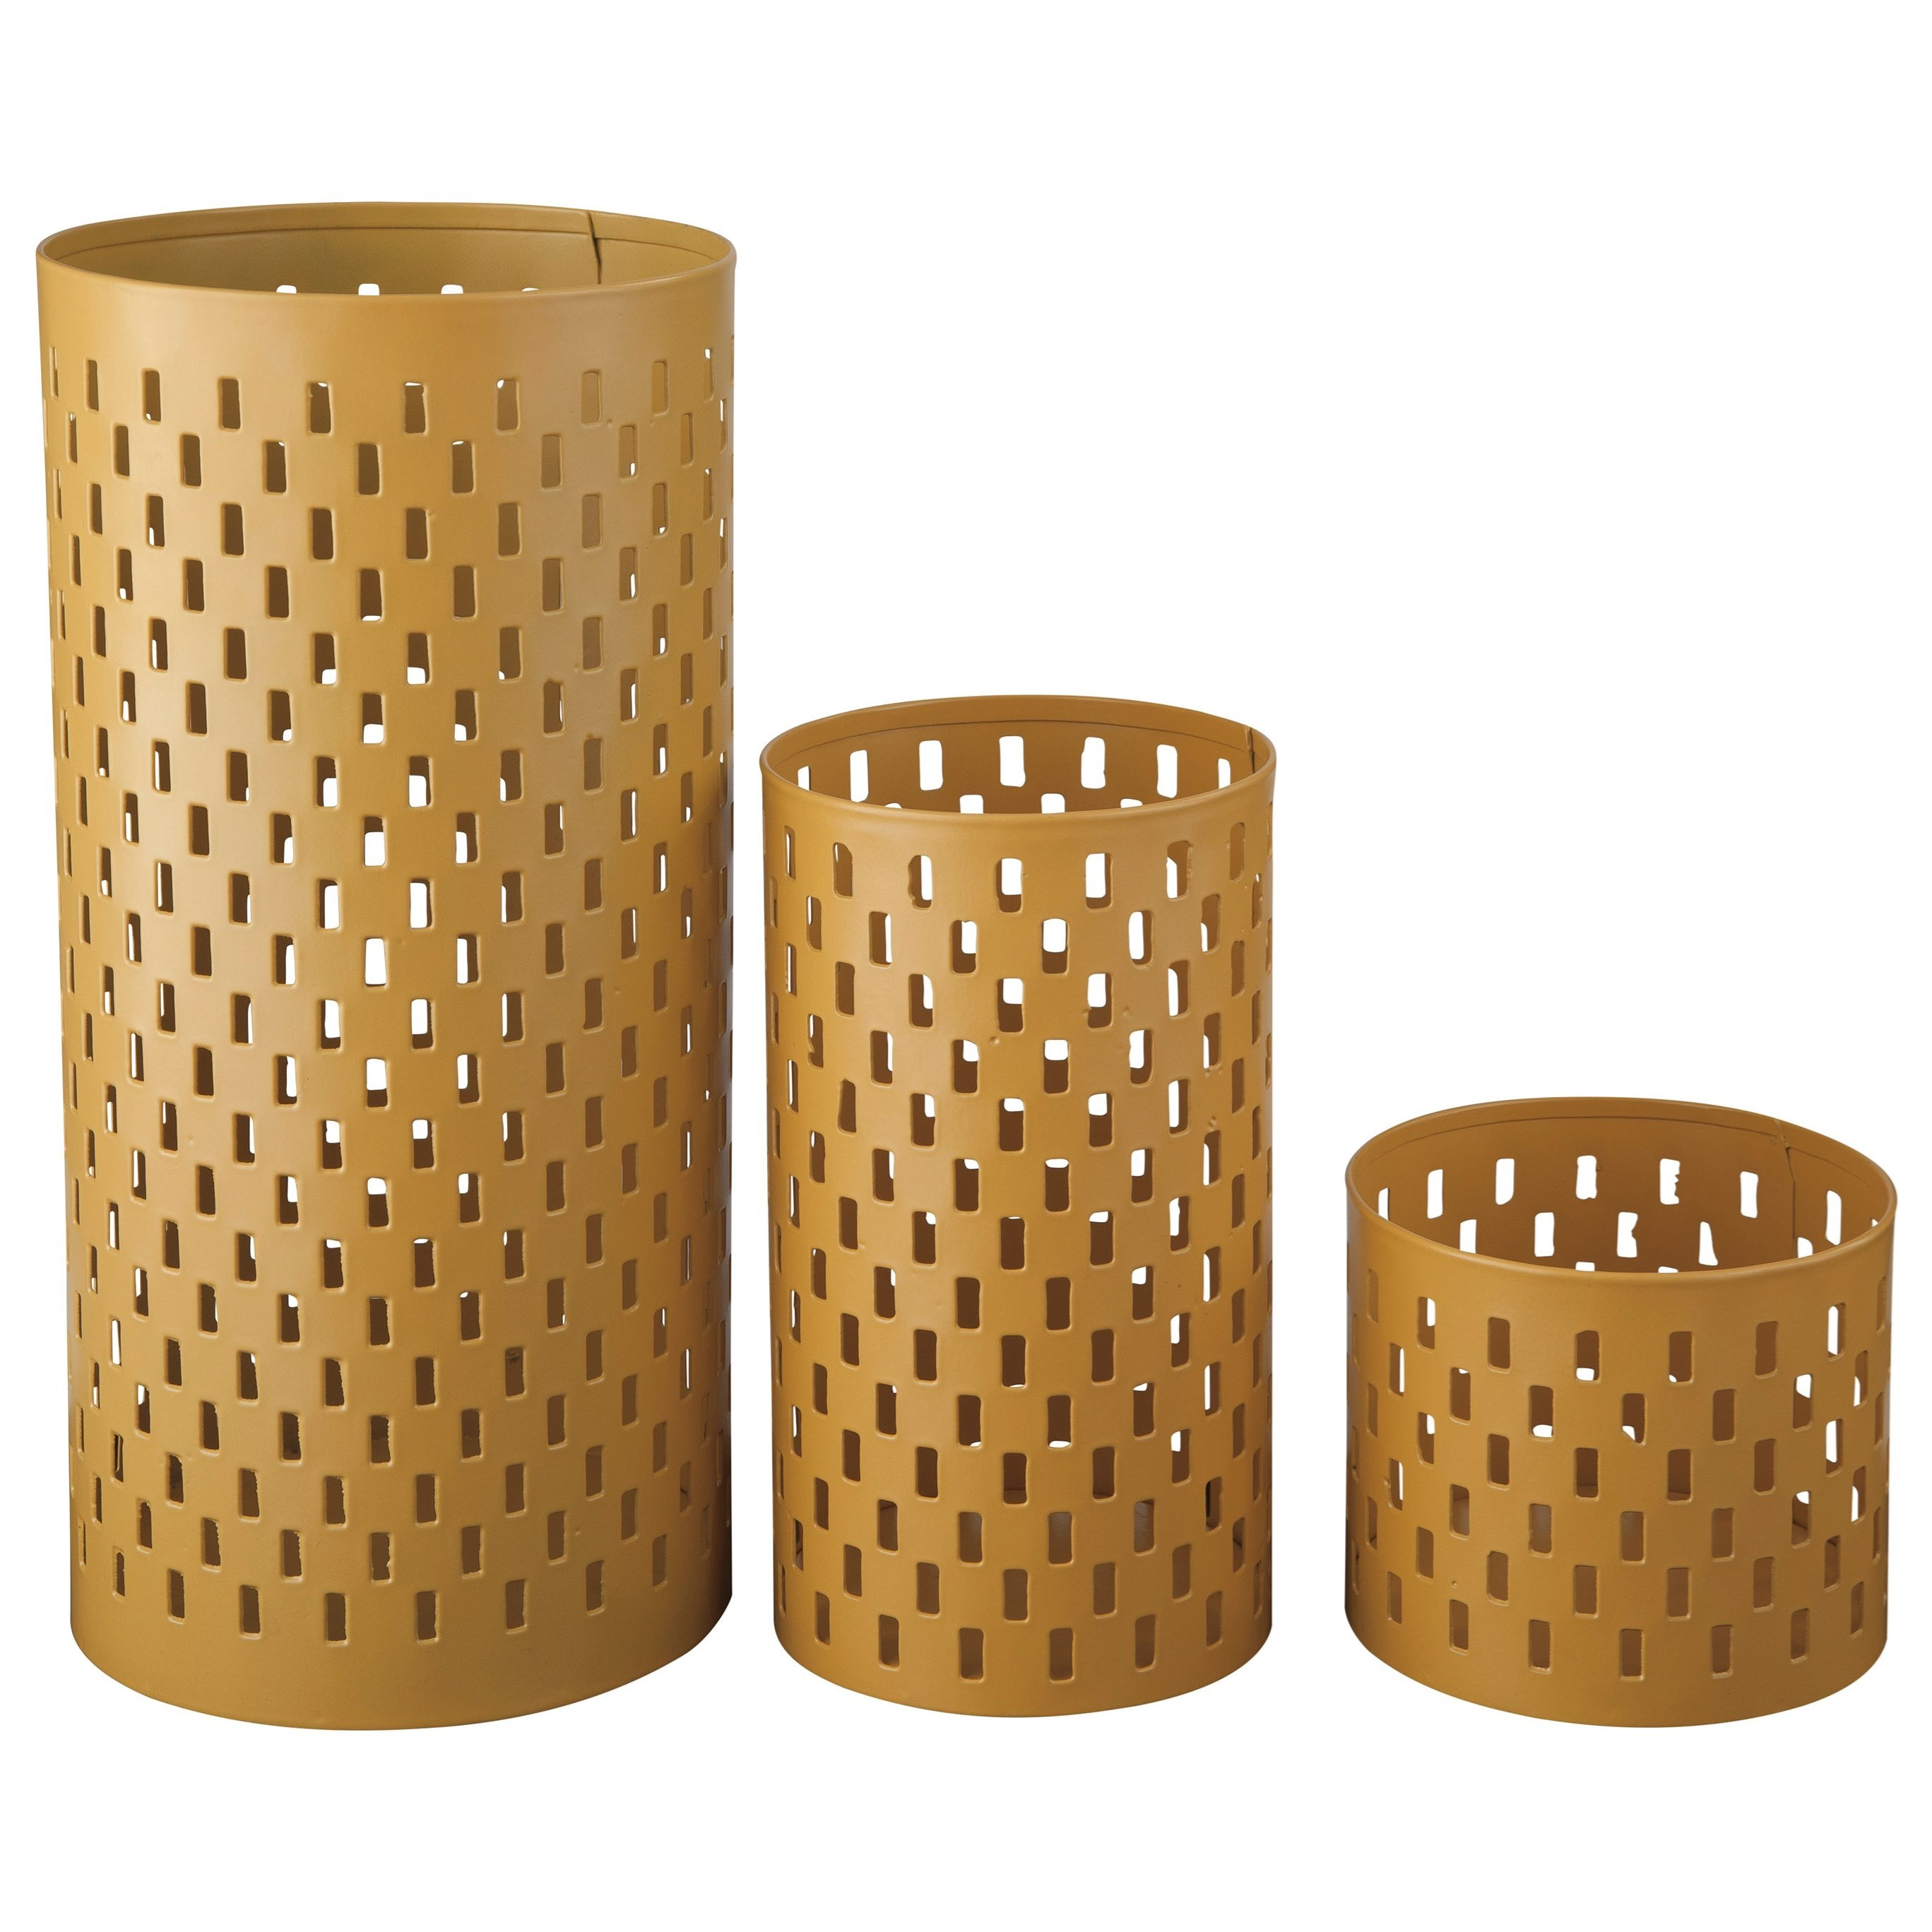 Signature Design by Ashley Accents Caelan - Yellow Candle Holder (Set of 3) - Item Number: A2000157C